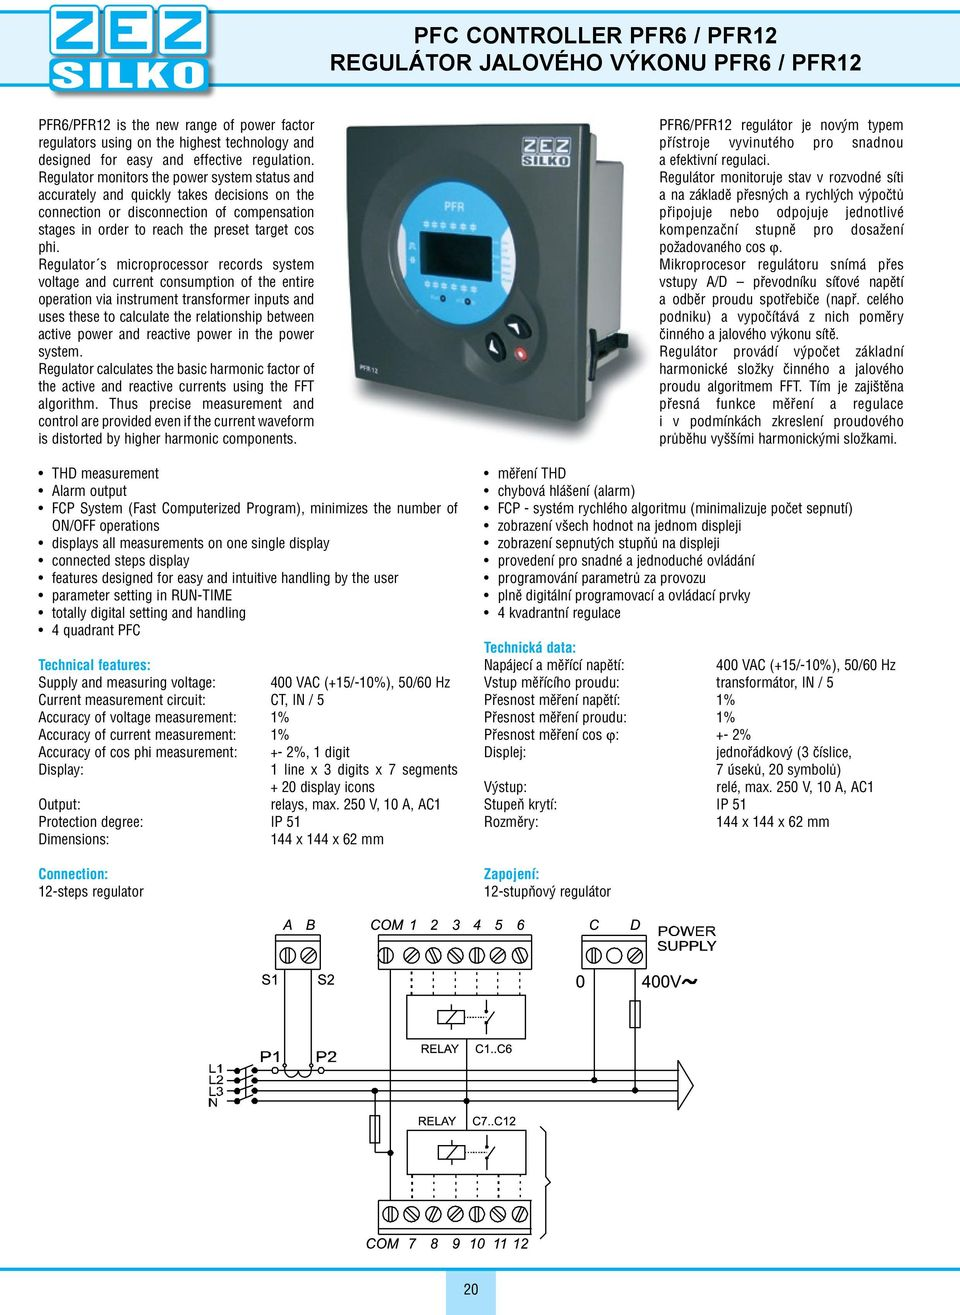 Regulator s microprocessor records system voltage and current consumption of the entire operation via instrument transformer inputs and uses these to calculate the relationship between active power